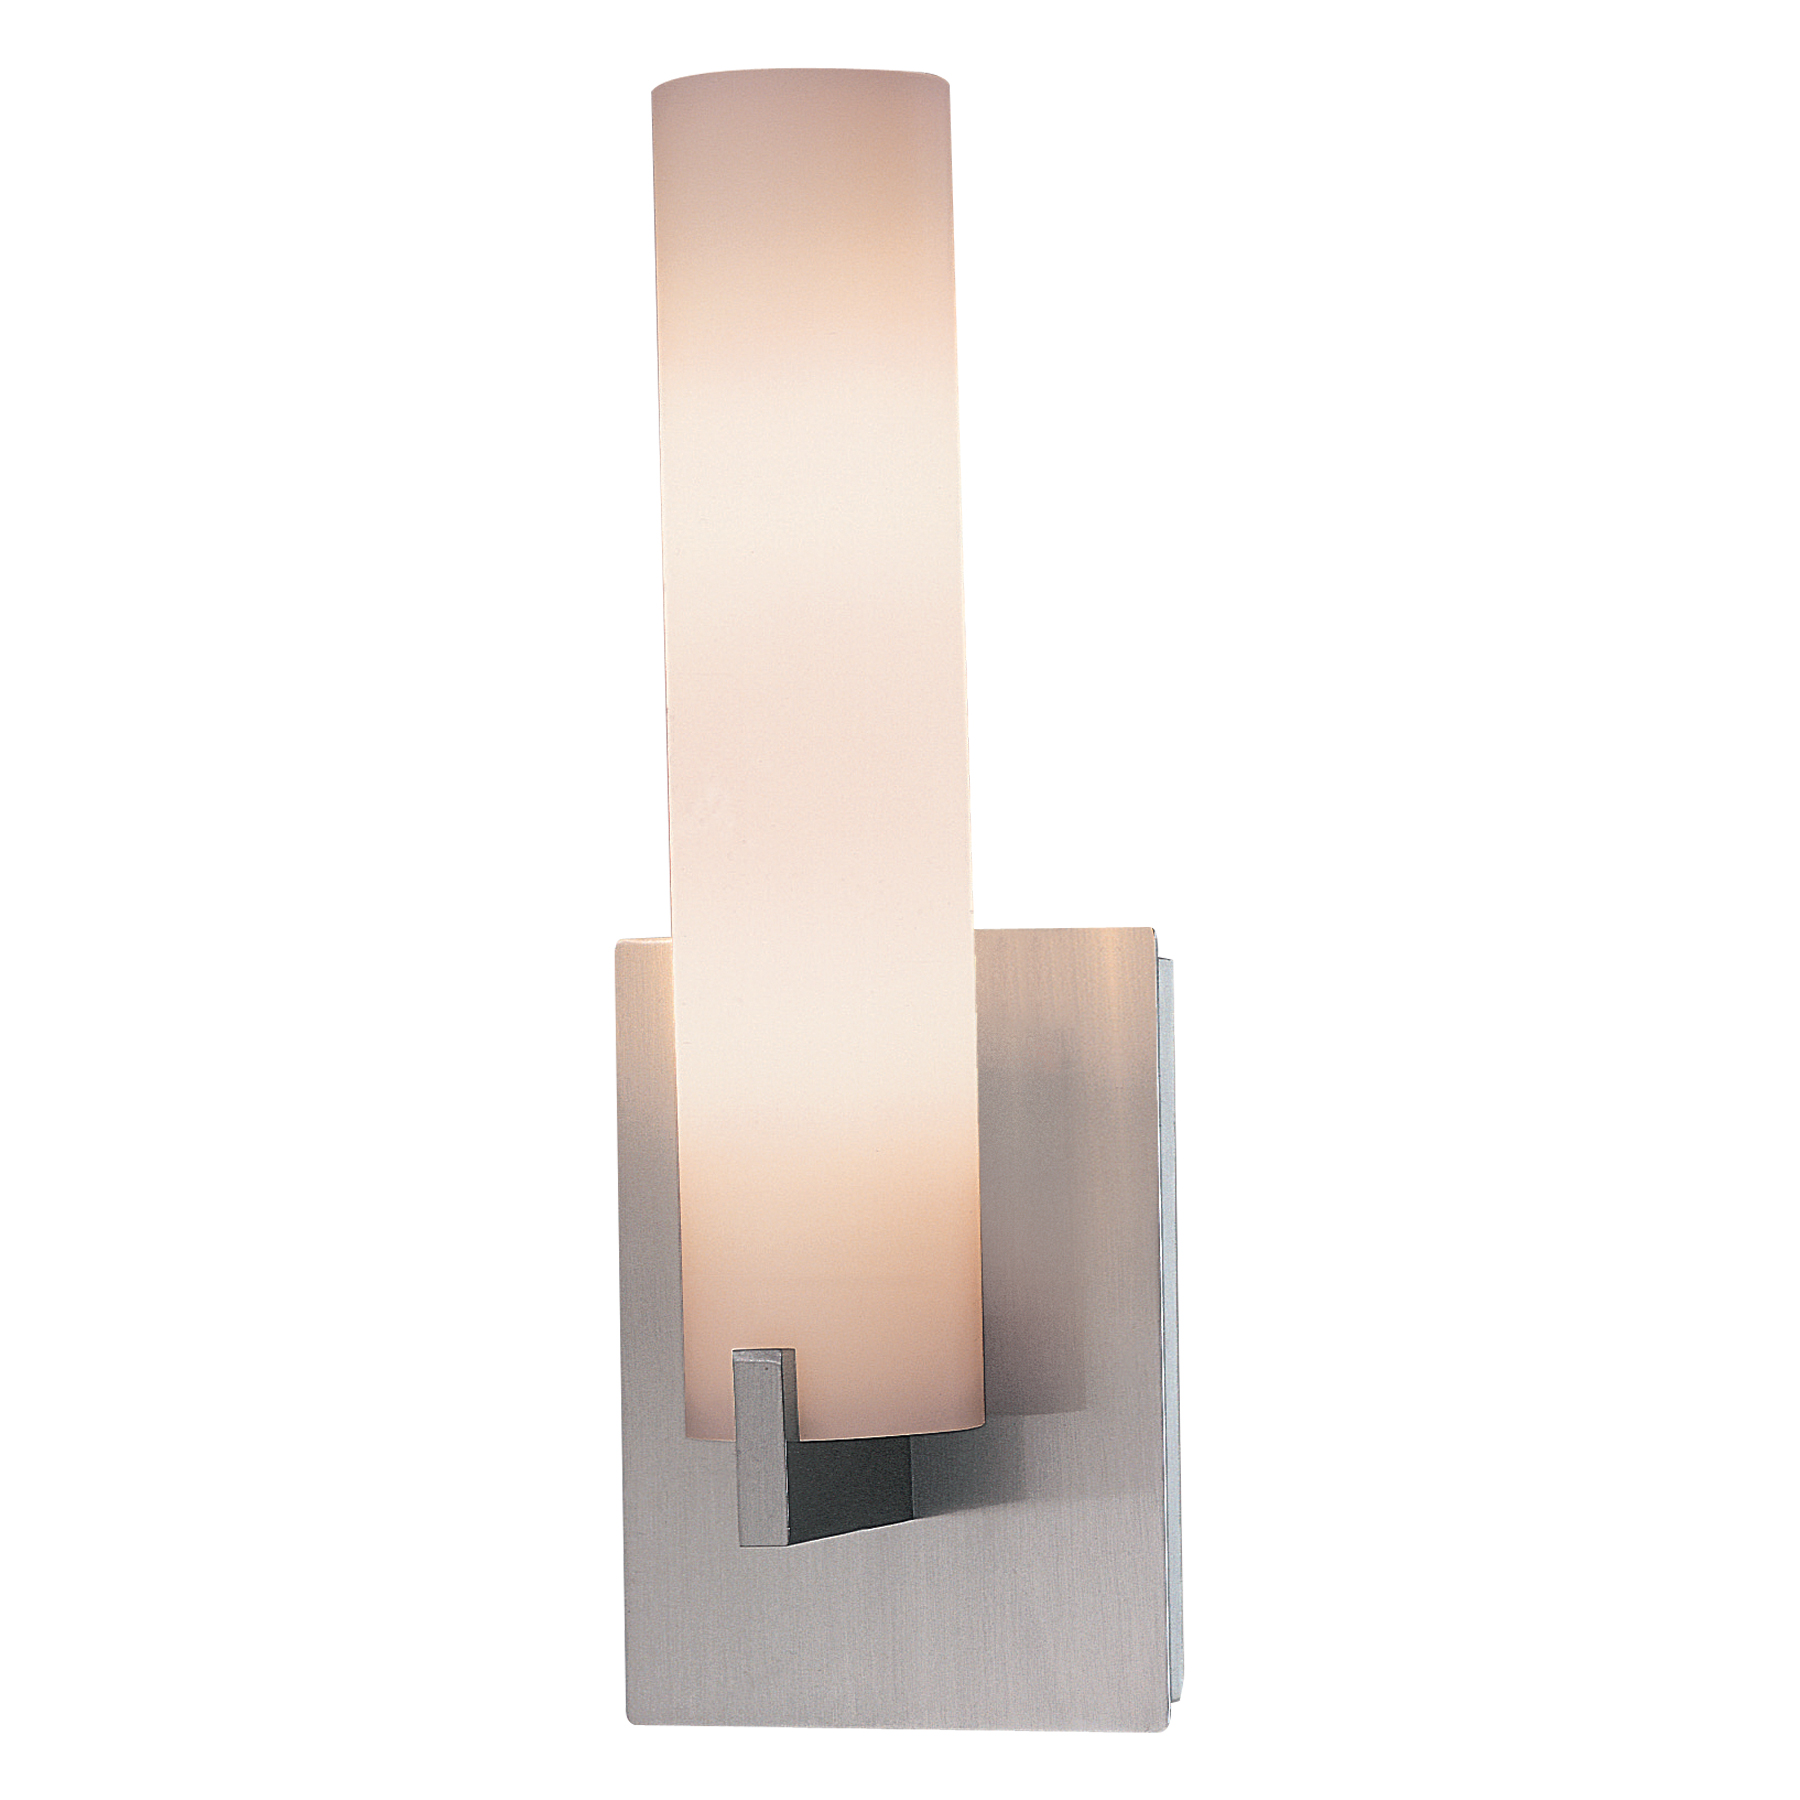 Installing Bathroom Sconces vanity wall sconcegeorge kovacs | p5040-084